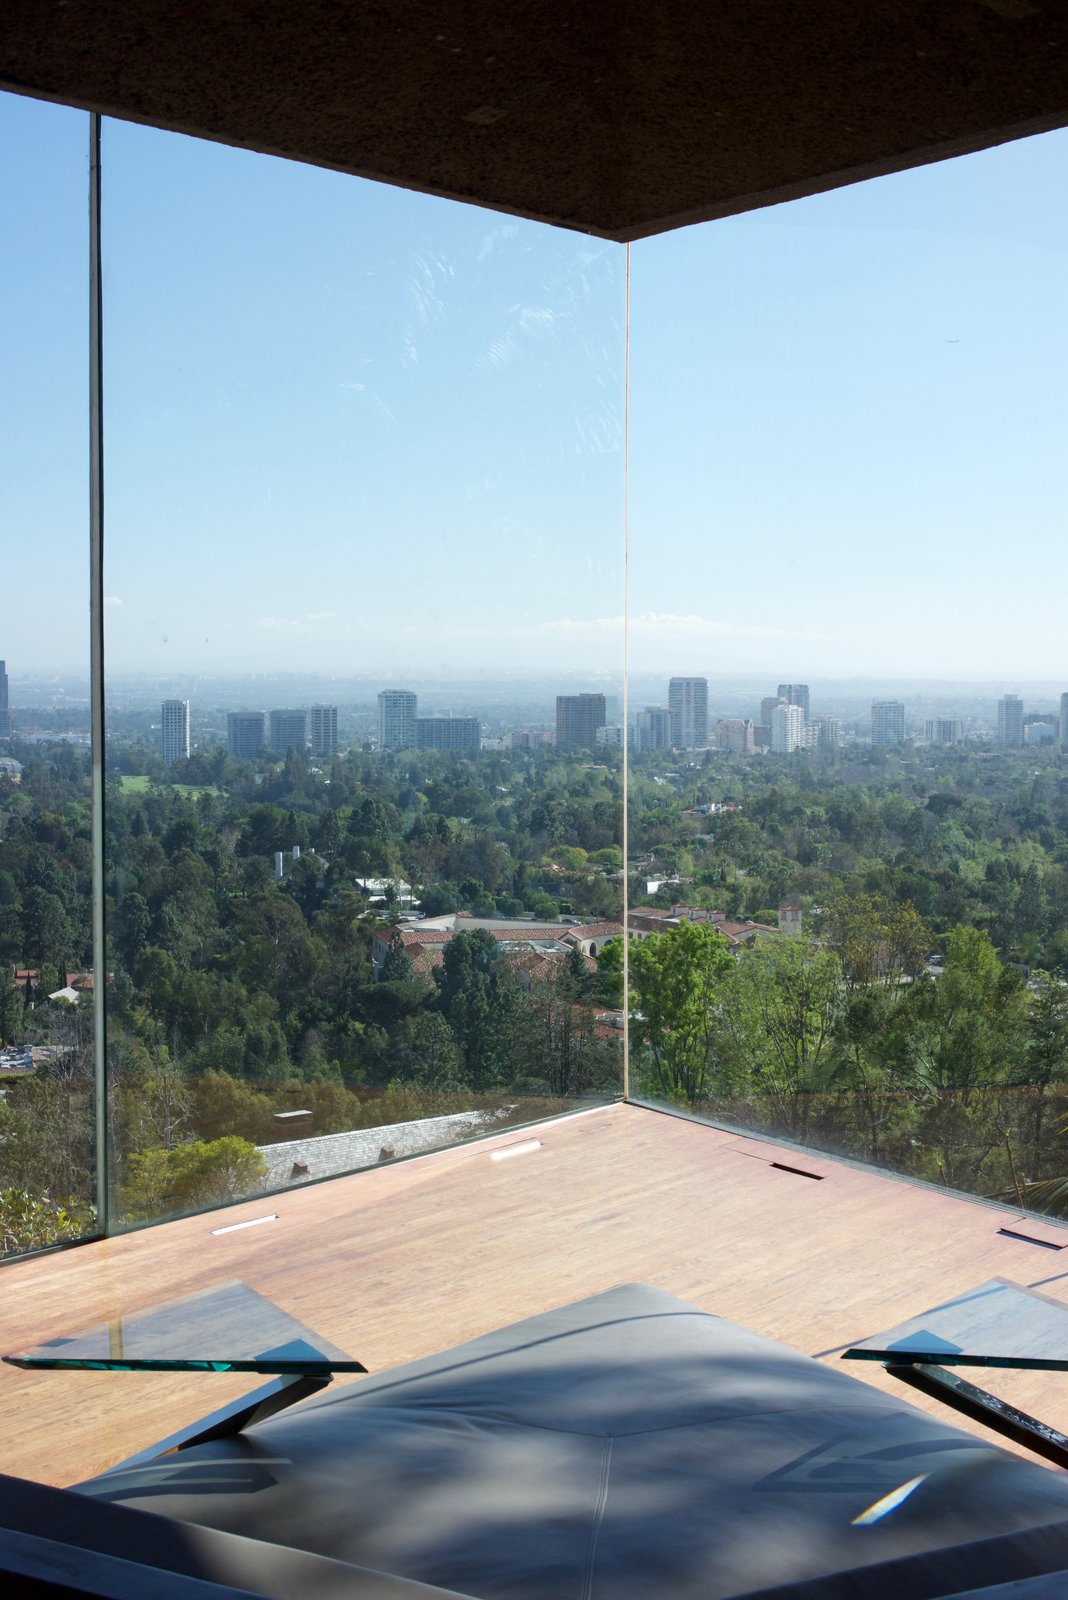 The bedroom holds custom gray leather lounging beds with angular side tables made of glass and steel.  Behind the Scenes at John Lautner's Sheats-Goldstein Residence by Paige Alexus